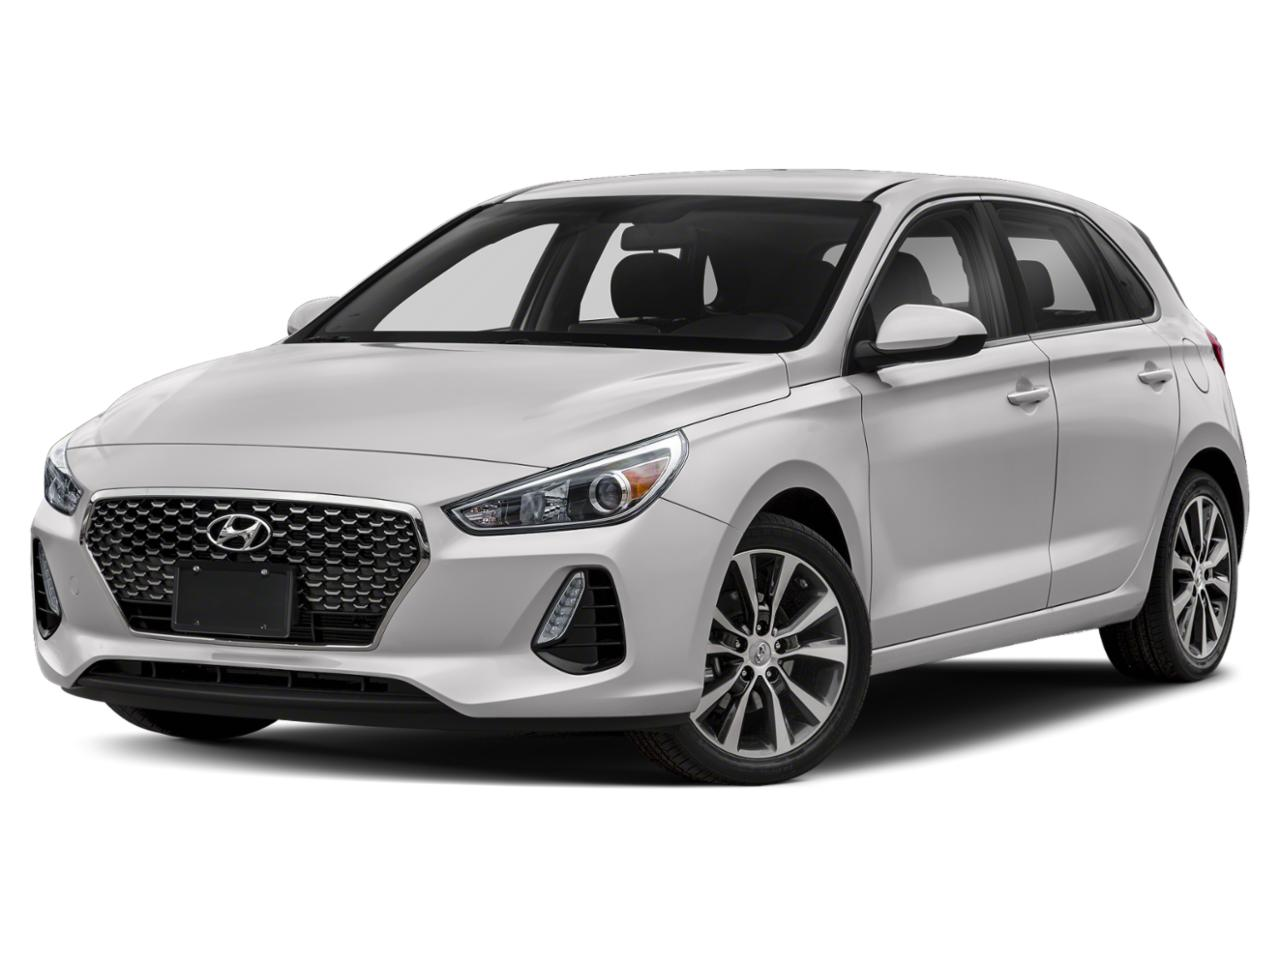 2019 Hyundai Elantra GT Vehicle Photo in Gulfport, MS 39503